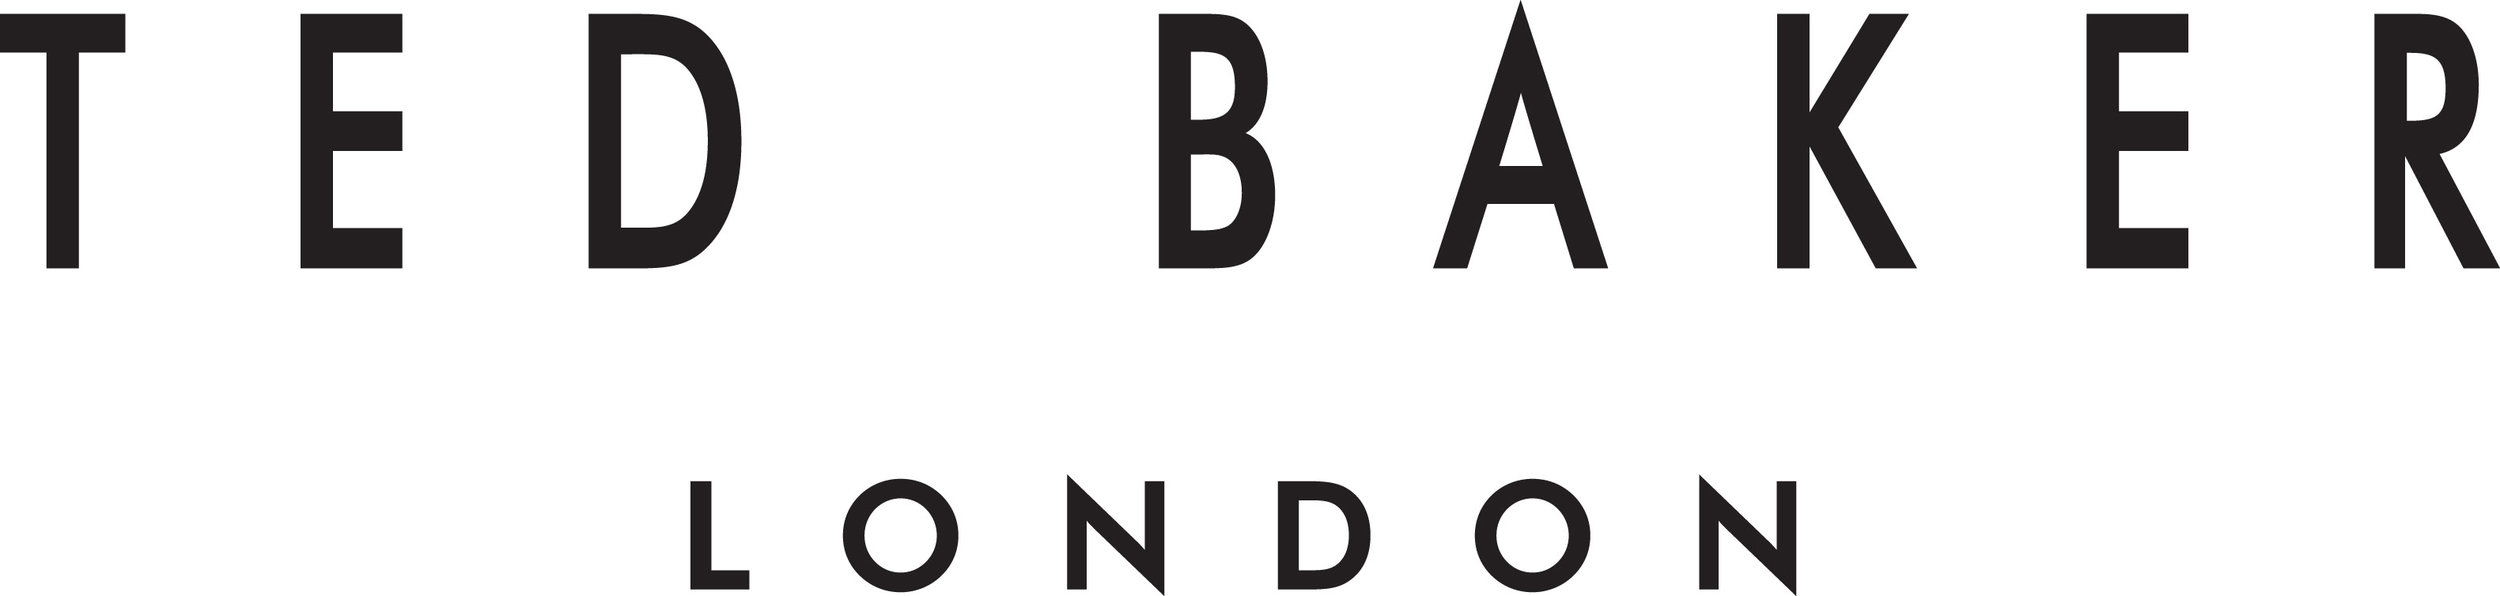 TED-BAKER-OUTLINE-LOGO-Converted.jpg